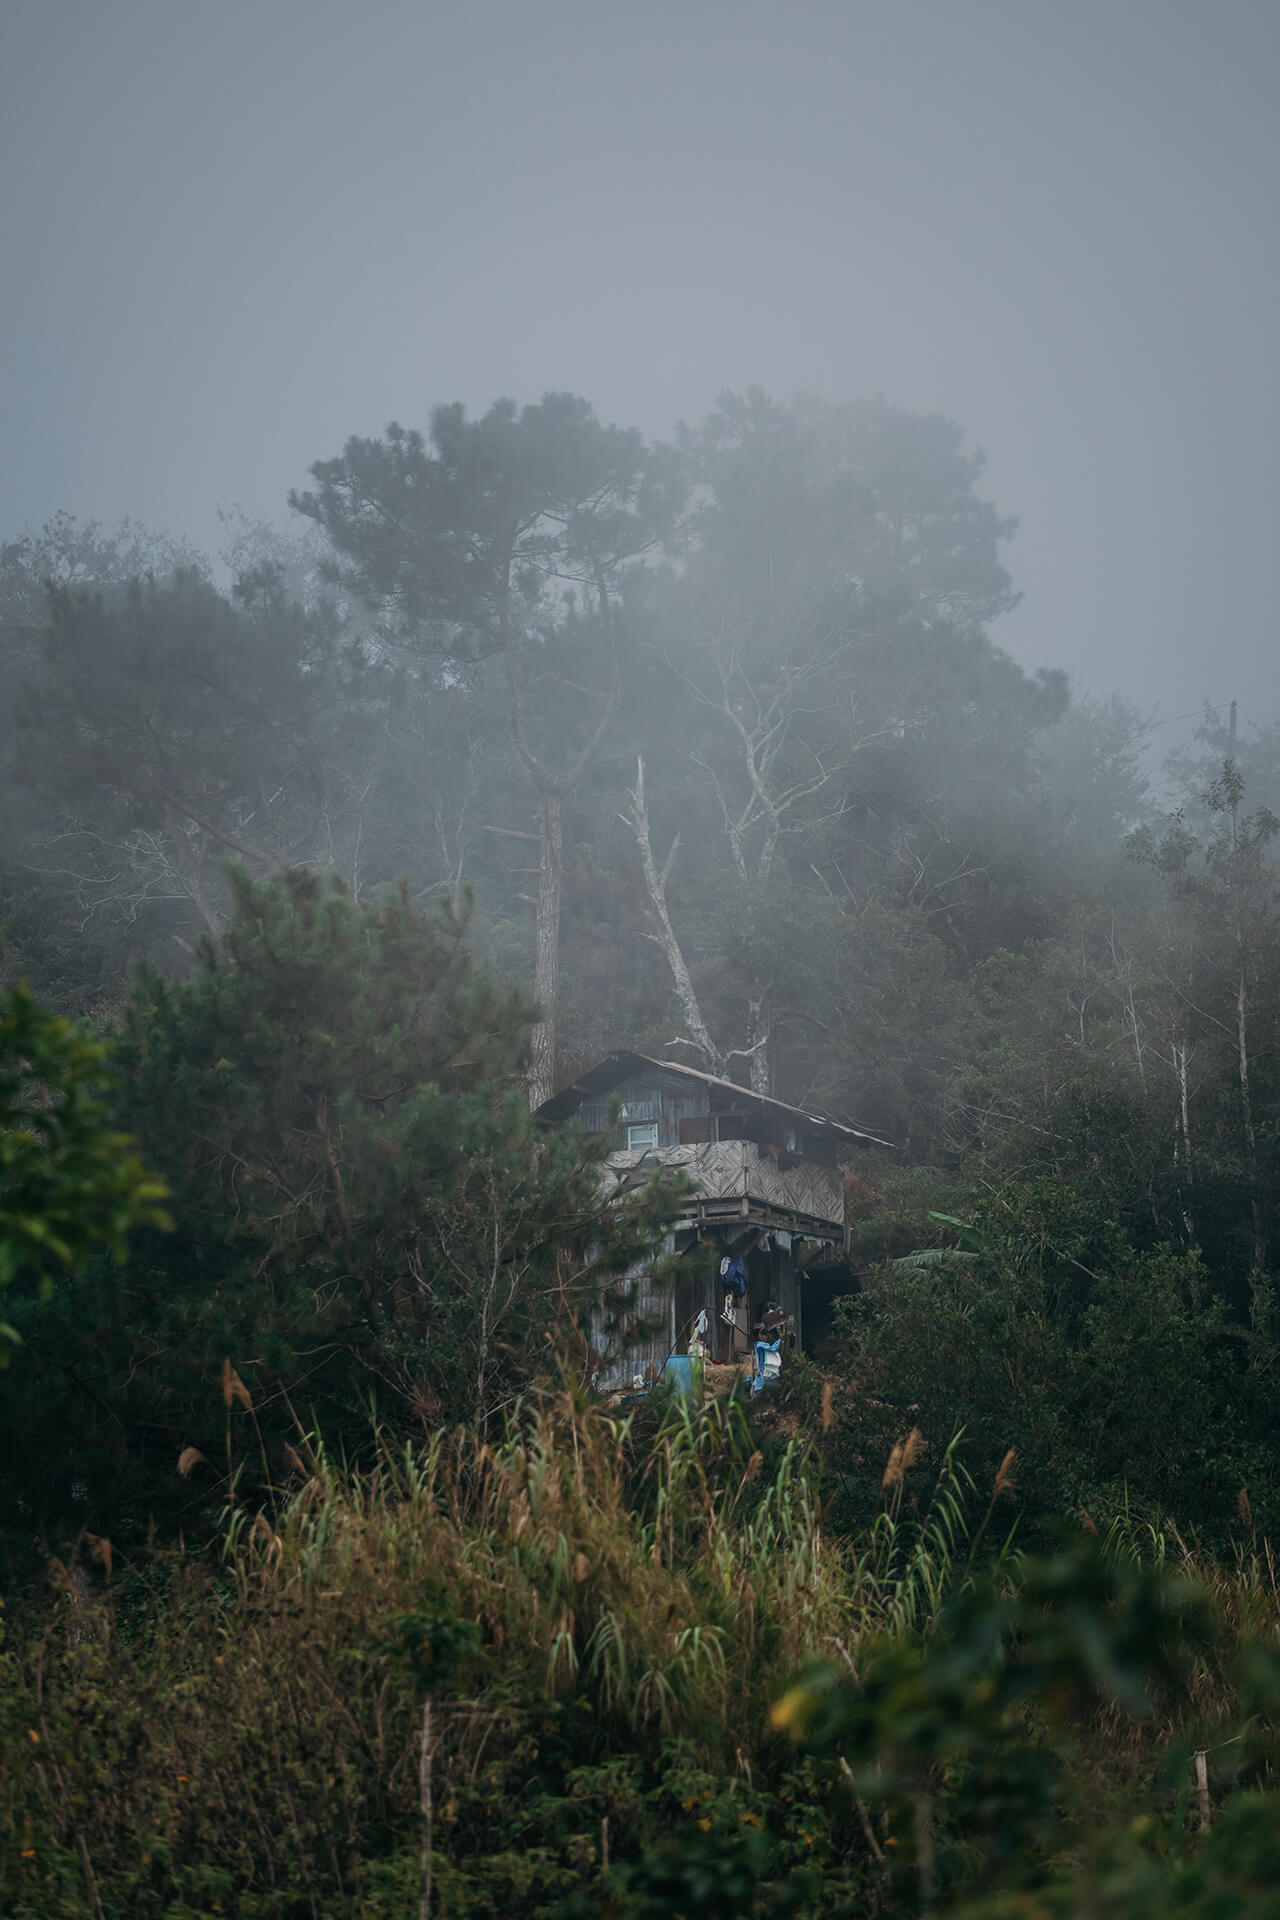 A mysterious and foggy view of Benguet